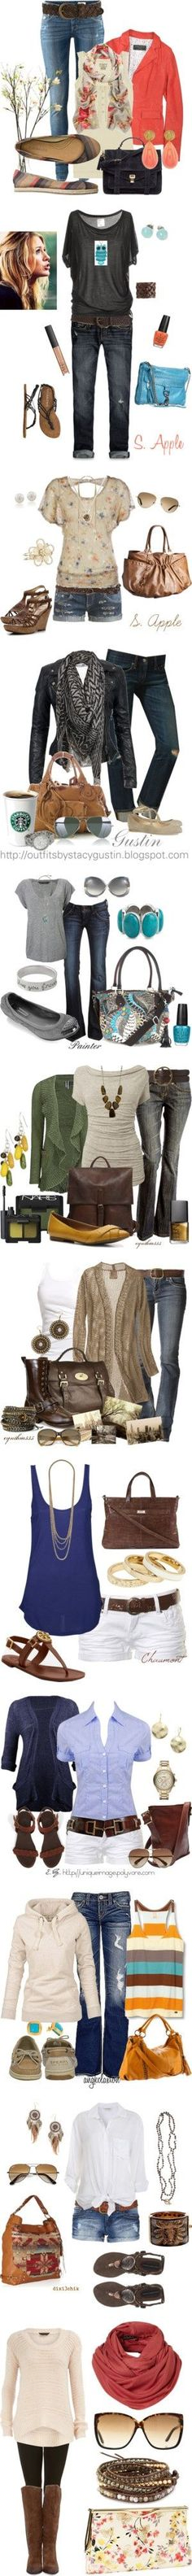 Some+cute+combinations. - Click image to find more Women's Fashion Pinterest pins